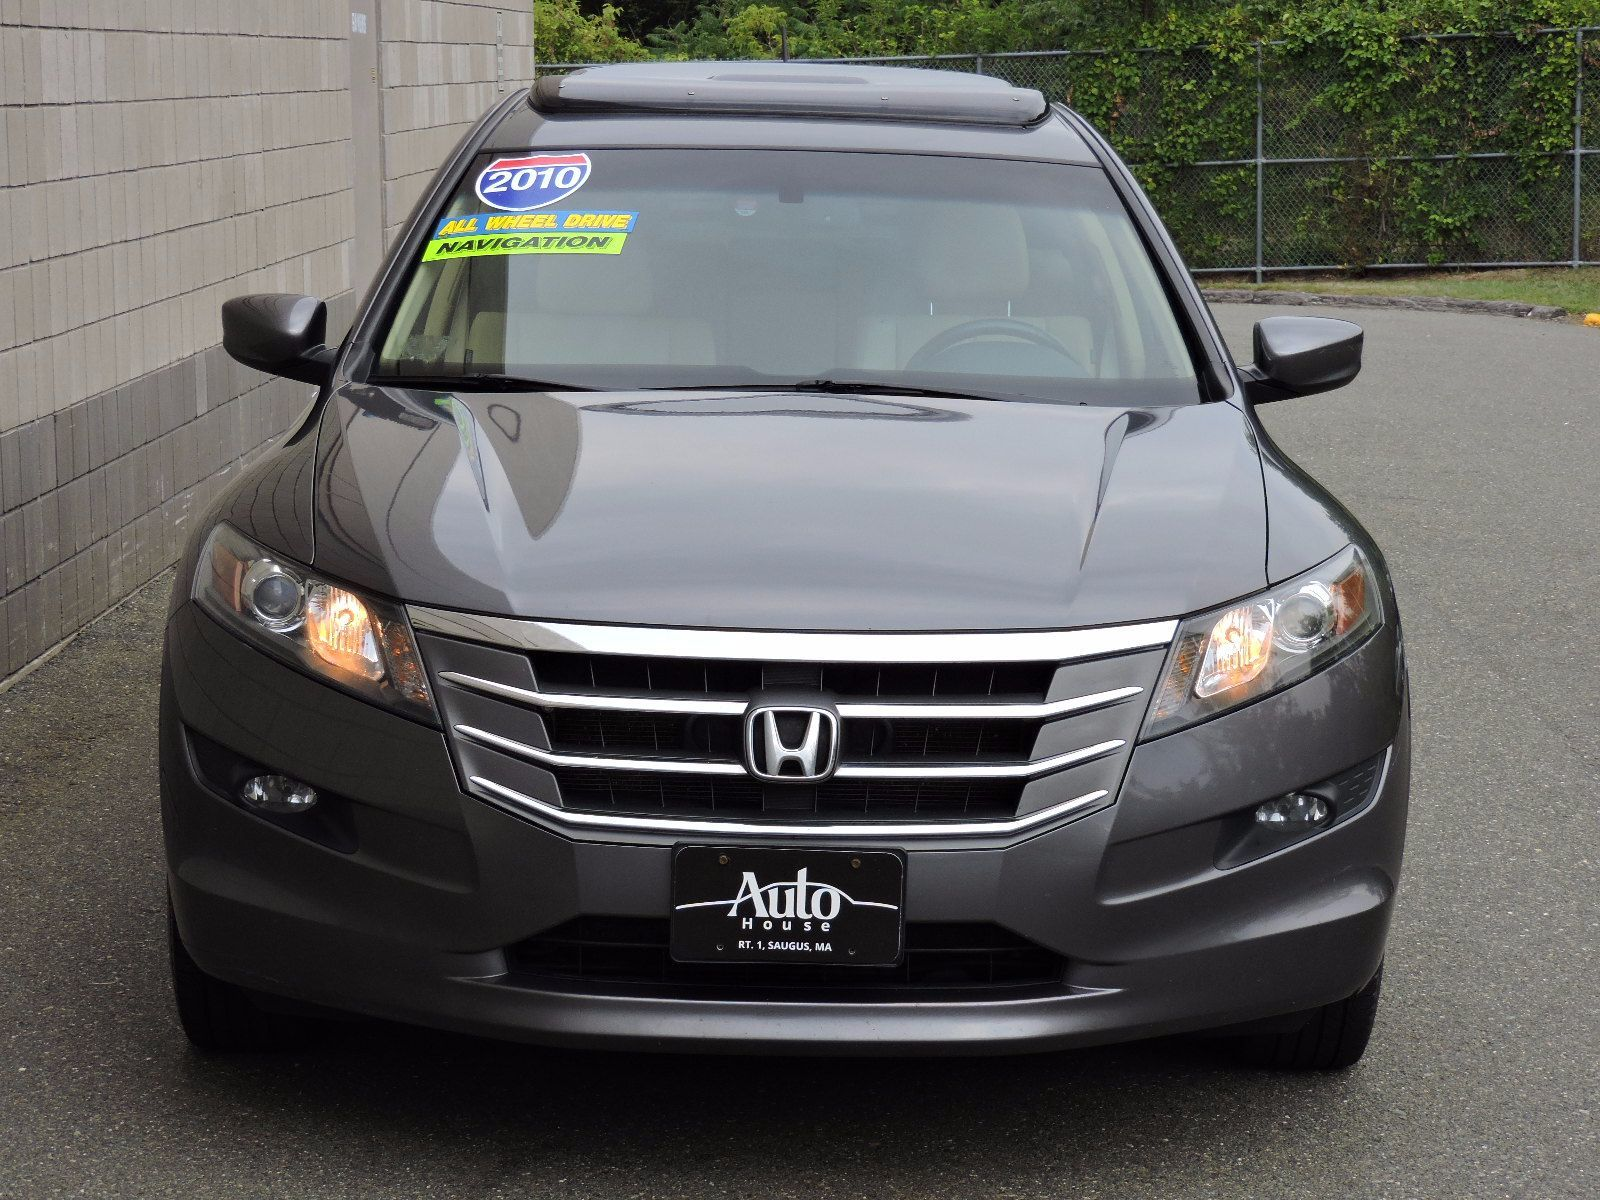 Used 2010 honda accord crosstour ex l at auto house usa saugus for Used honda accords